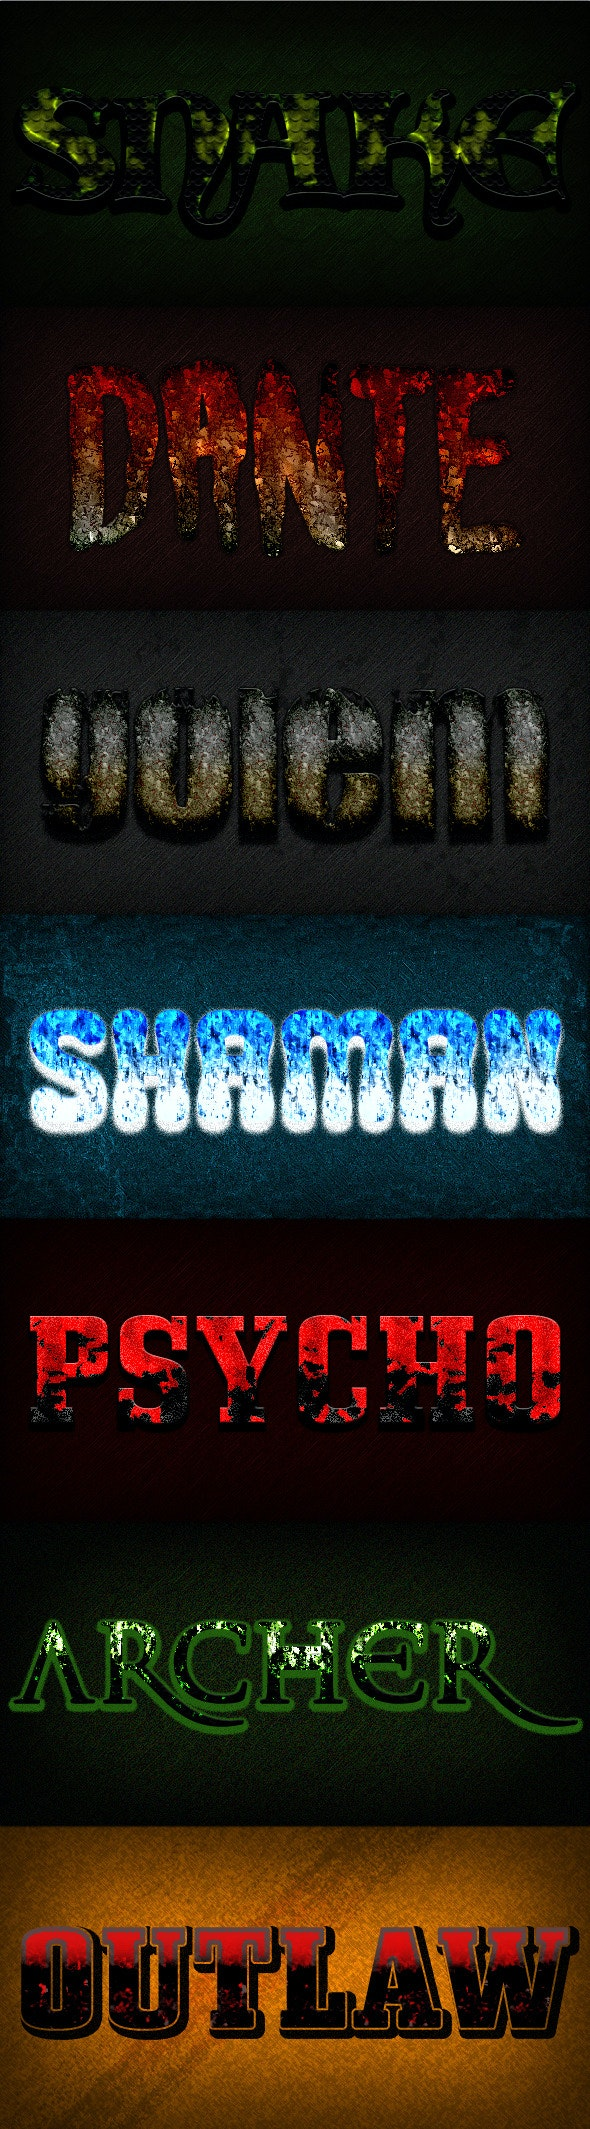 Photoshop Text Styles / Epic Gamer Vol.3 - Text Effects Styles